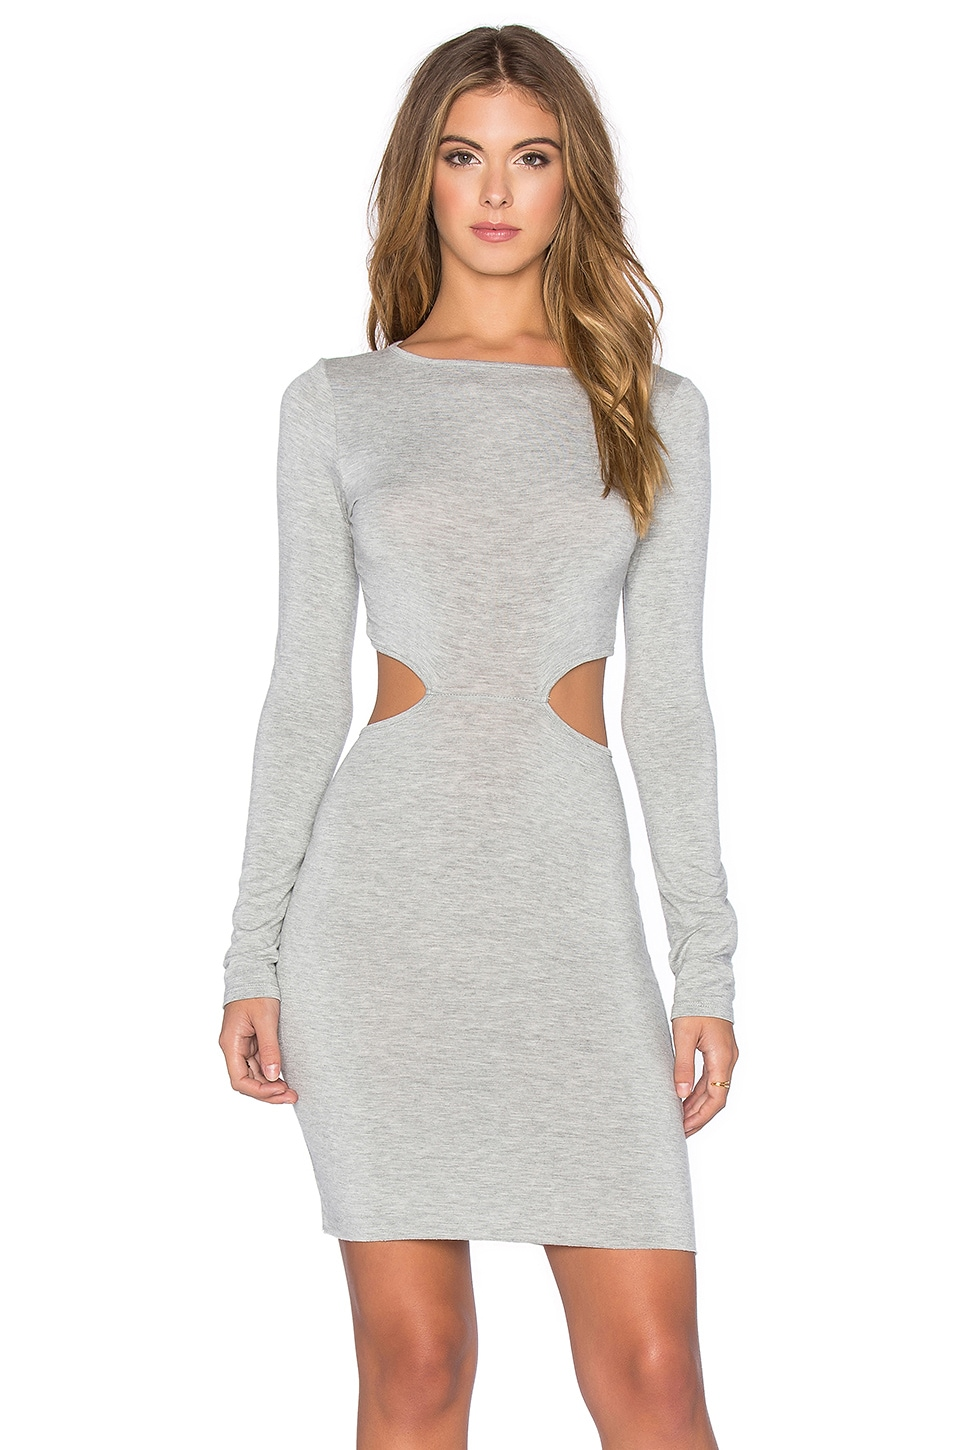 Clayton Gigi Dress in Heather Grey